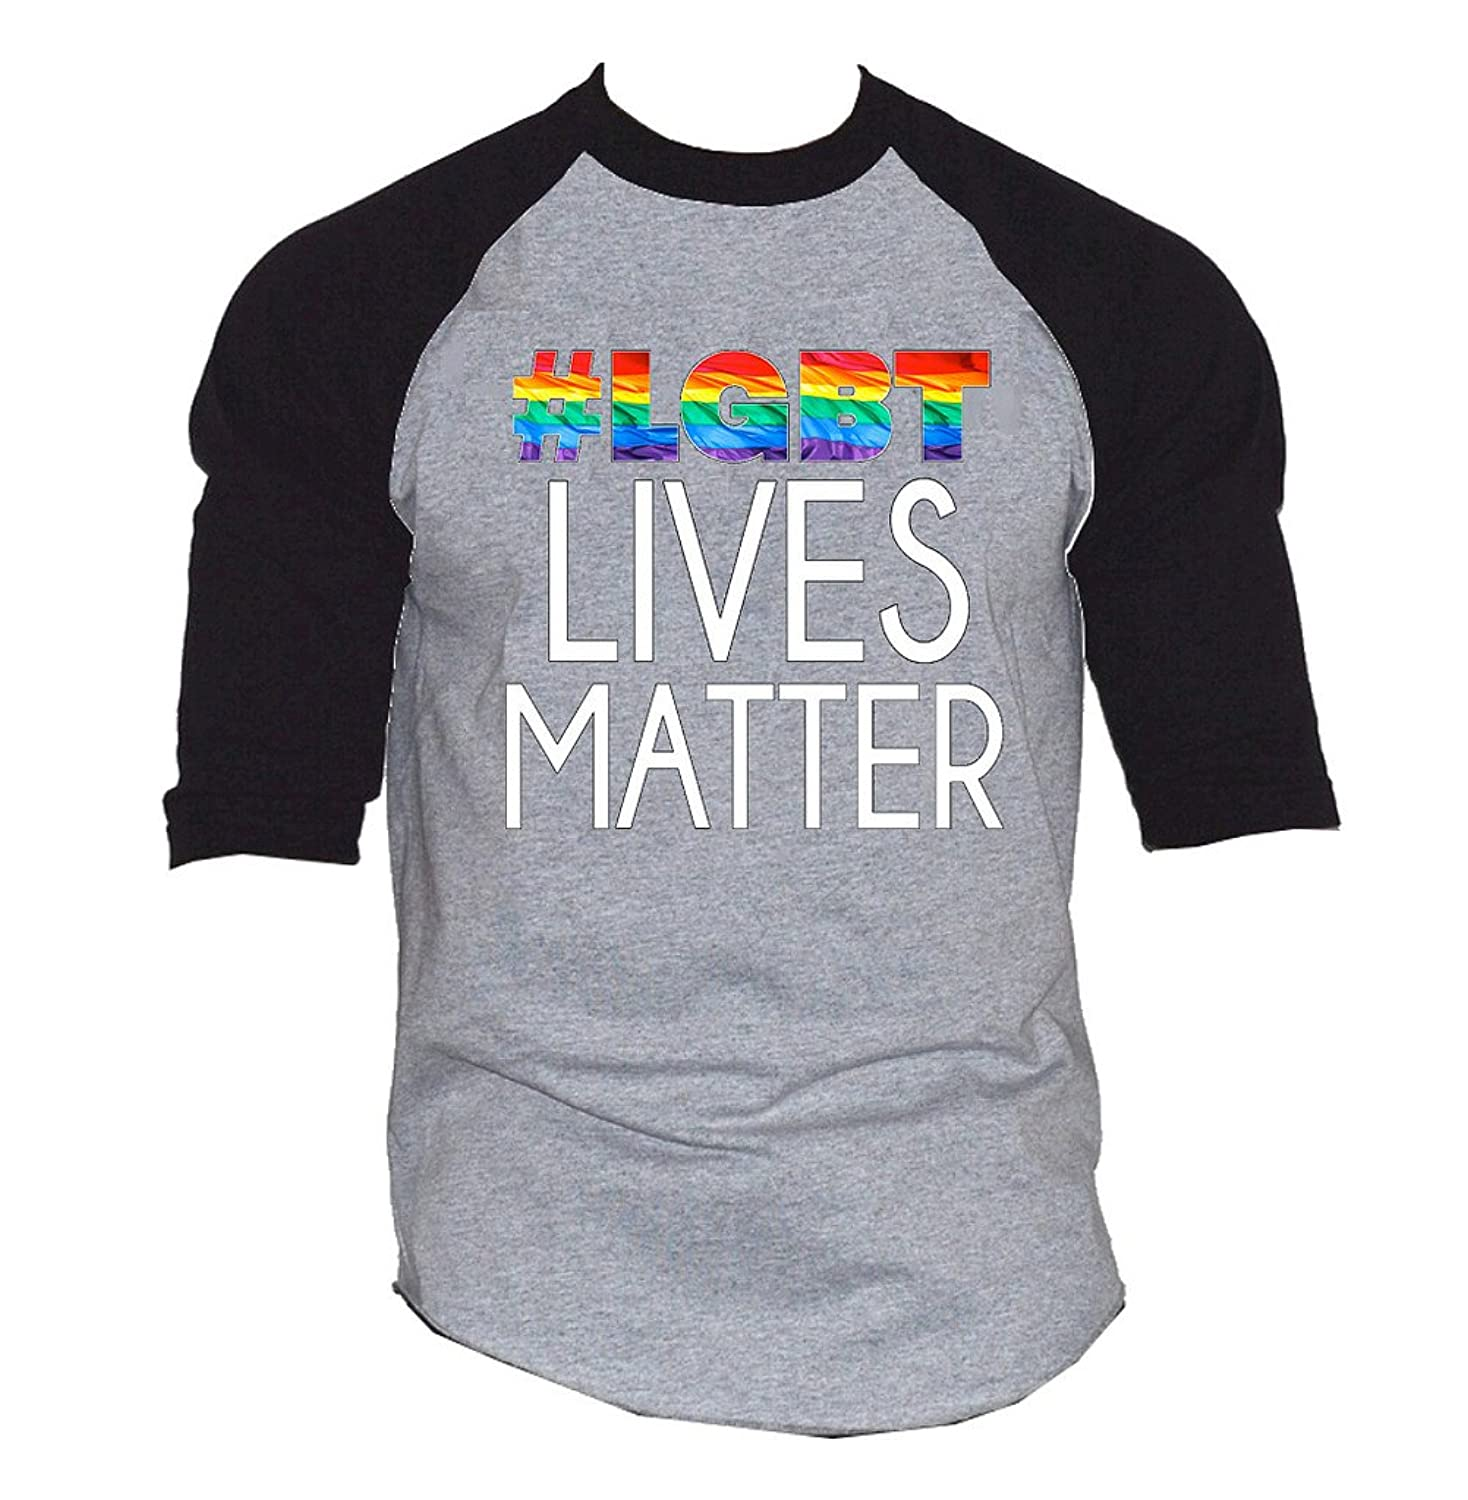 Rainbow LGBT Lives Matter Men's Black/Gray Raglan Baseball T-Shirt Black/Gray